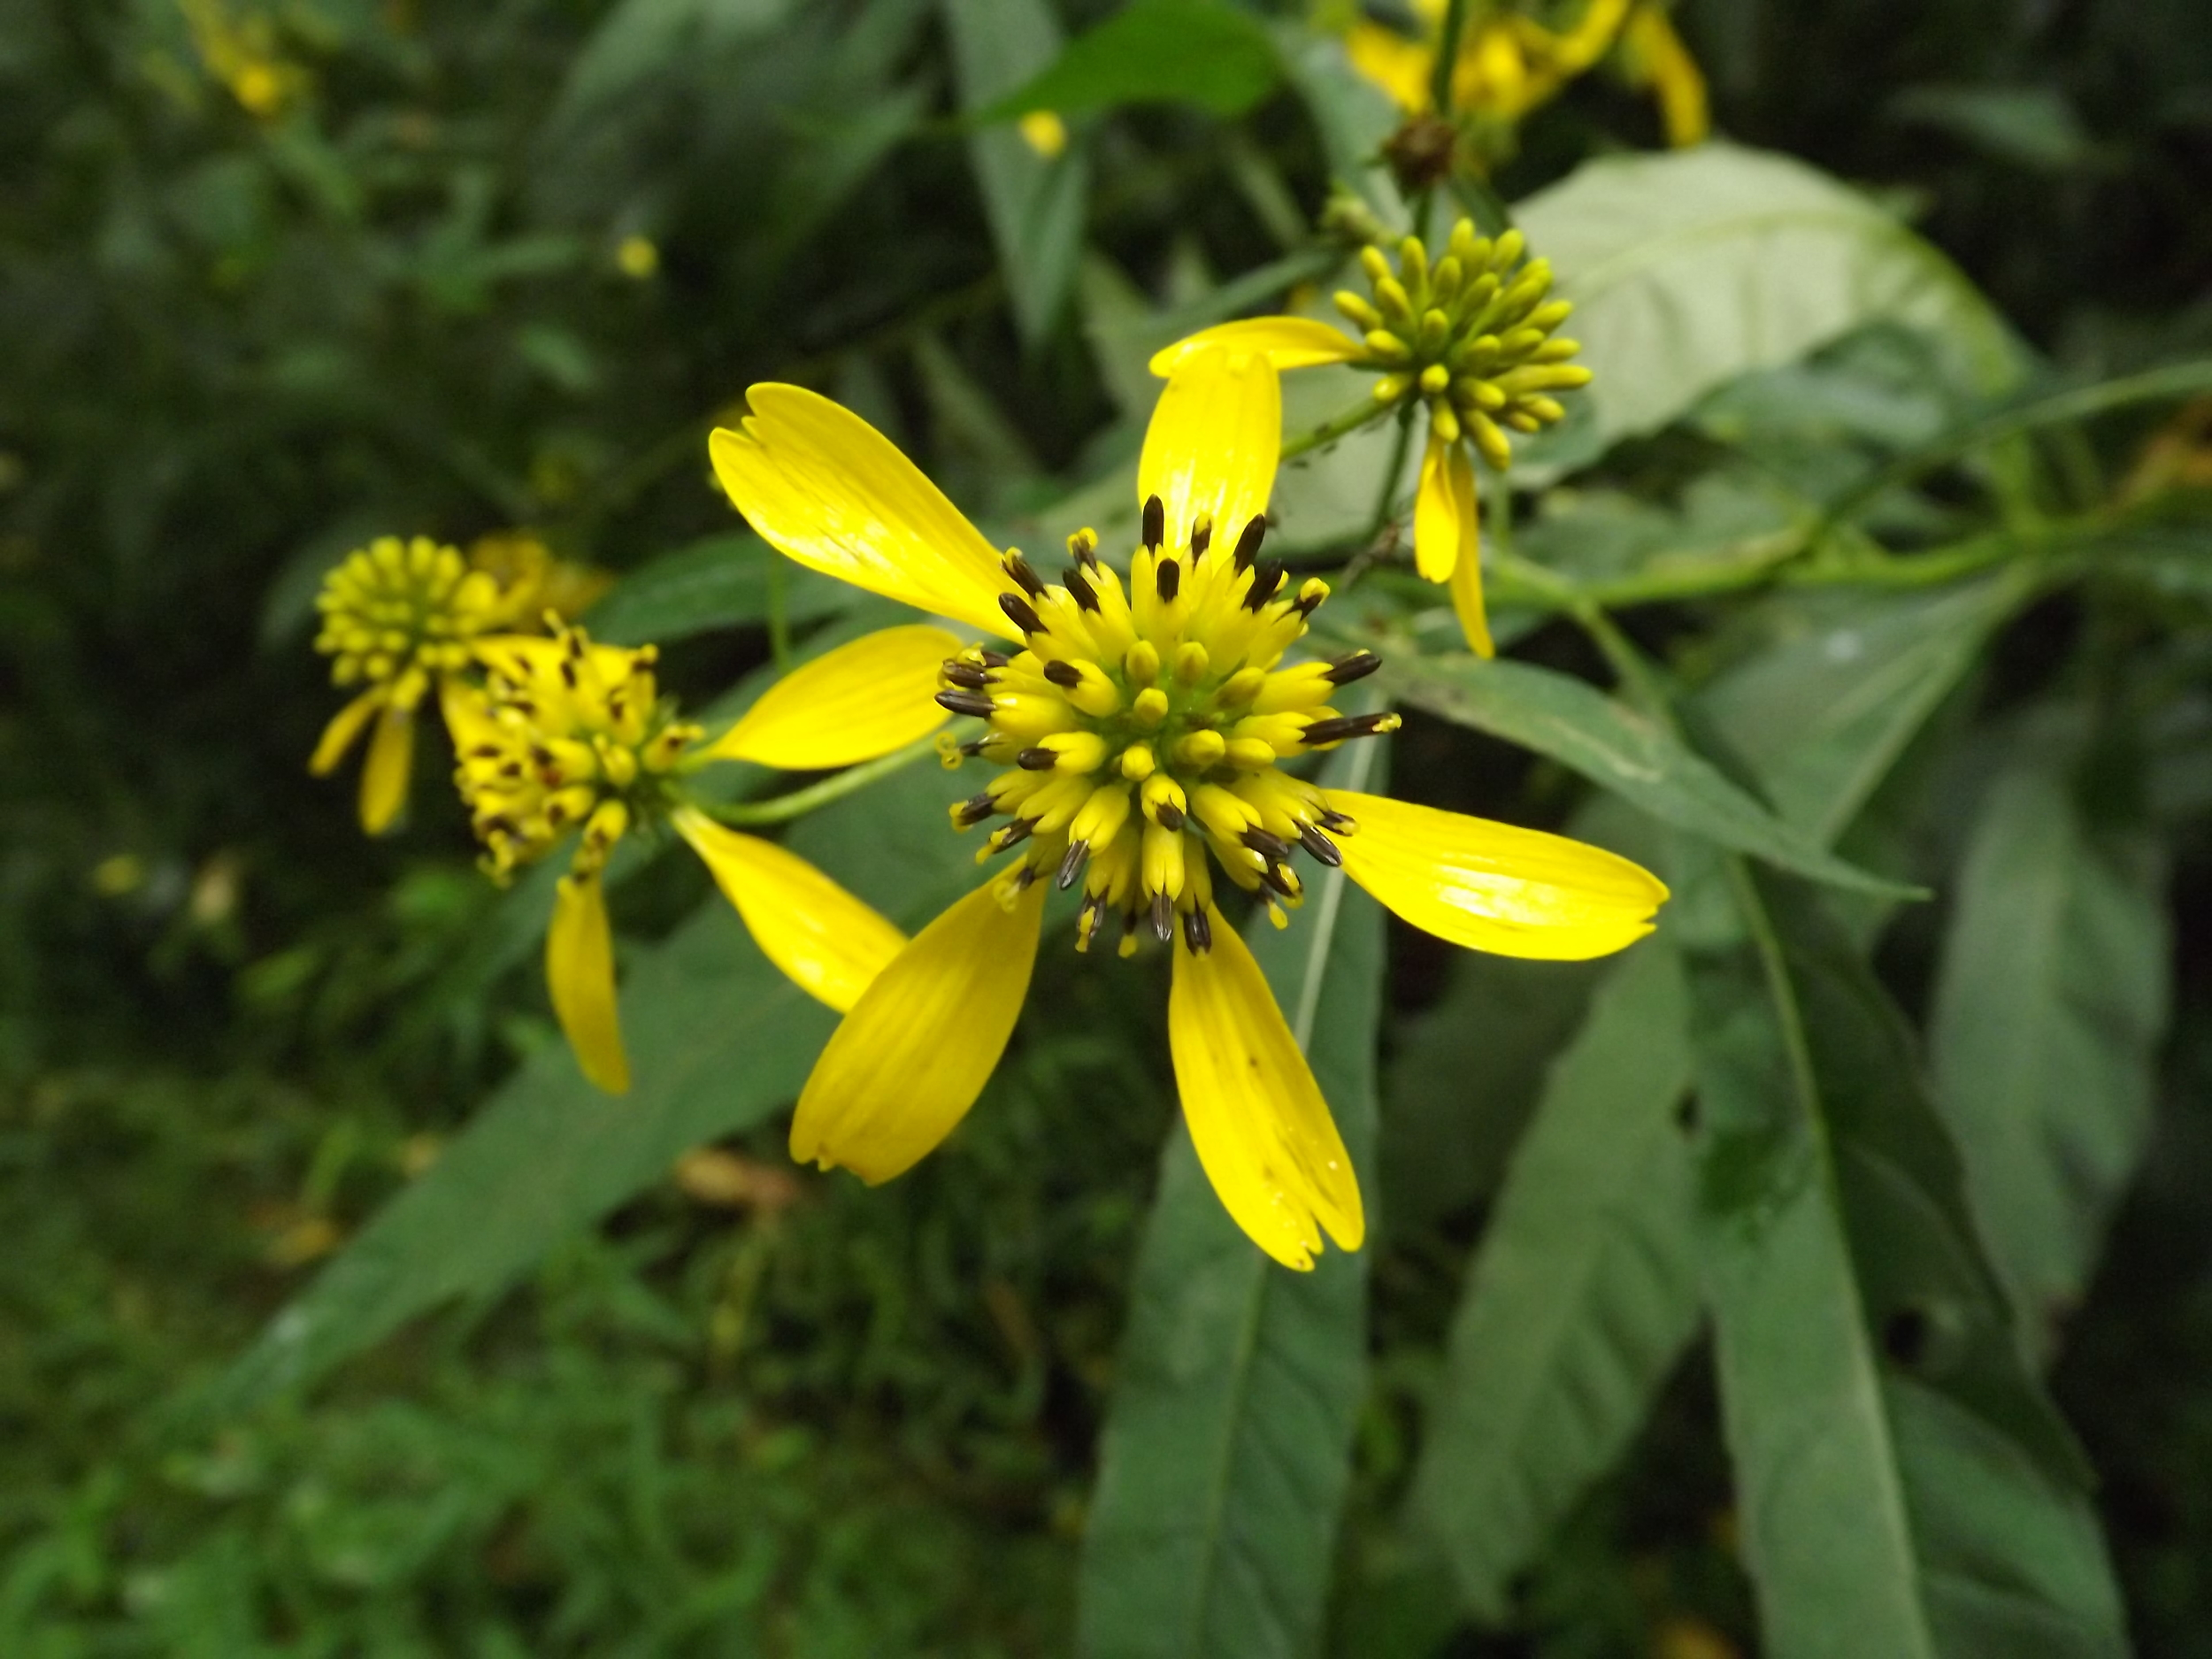 Yellow Ironweed  (Verbesina alternifolia ) - I'm still seeing a lot of Yellow Ironweed (Wingstem). Its flowers are starting to lose their petals though, so they probably won't be around for much longer.